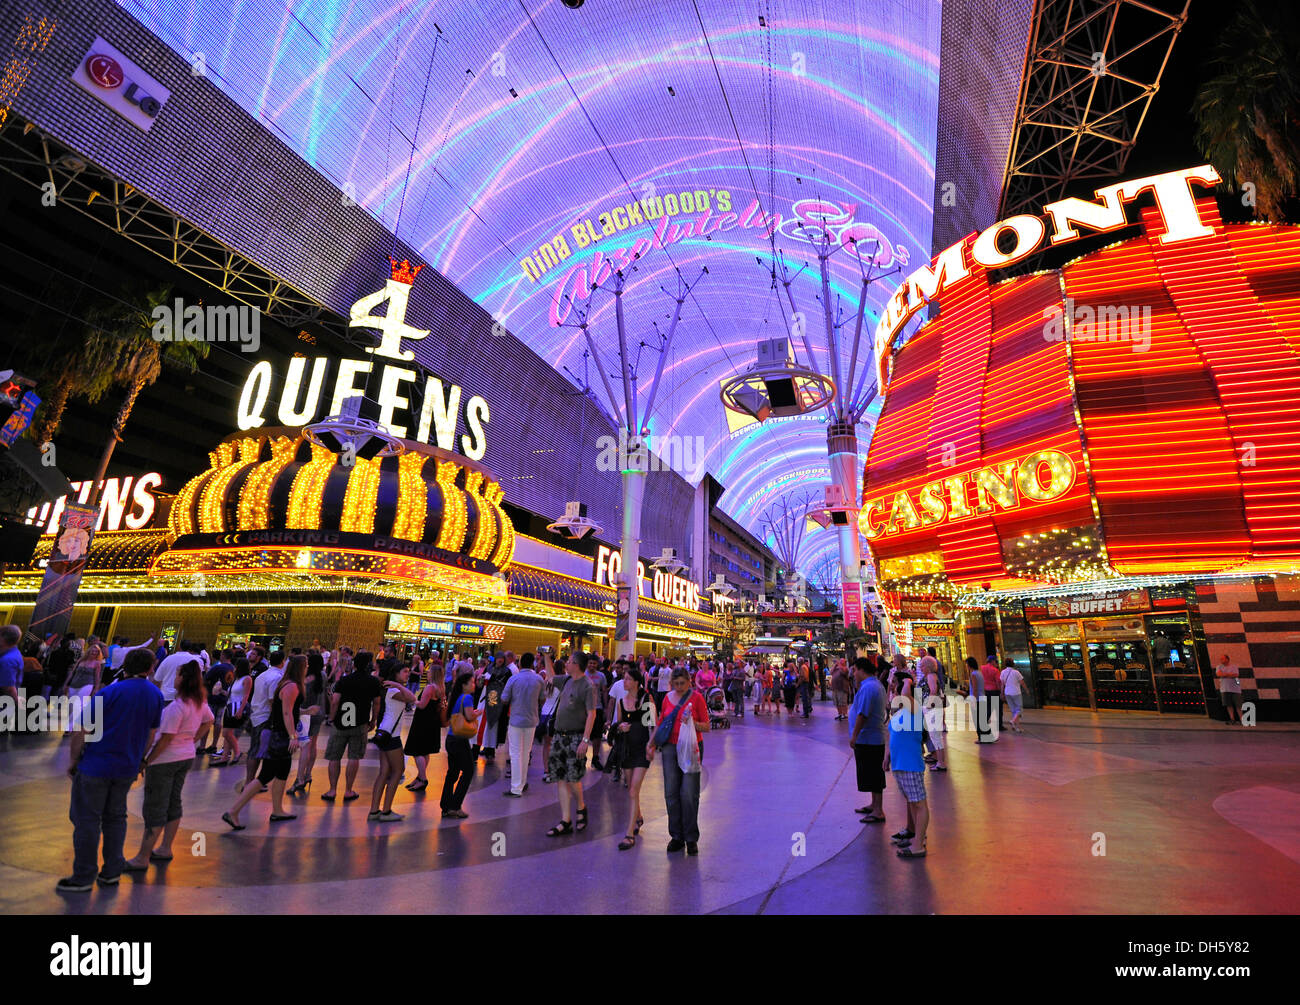 Casino freemont street las vegas twin pine casino and hotel